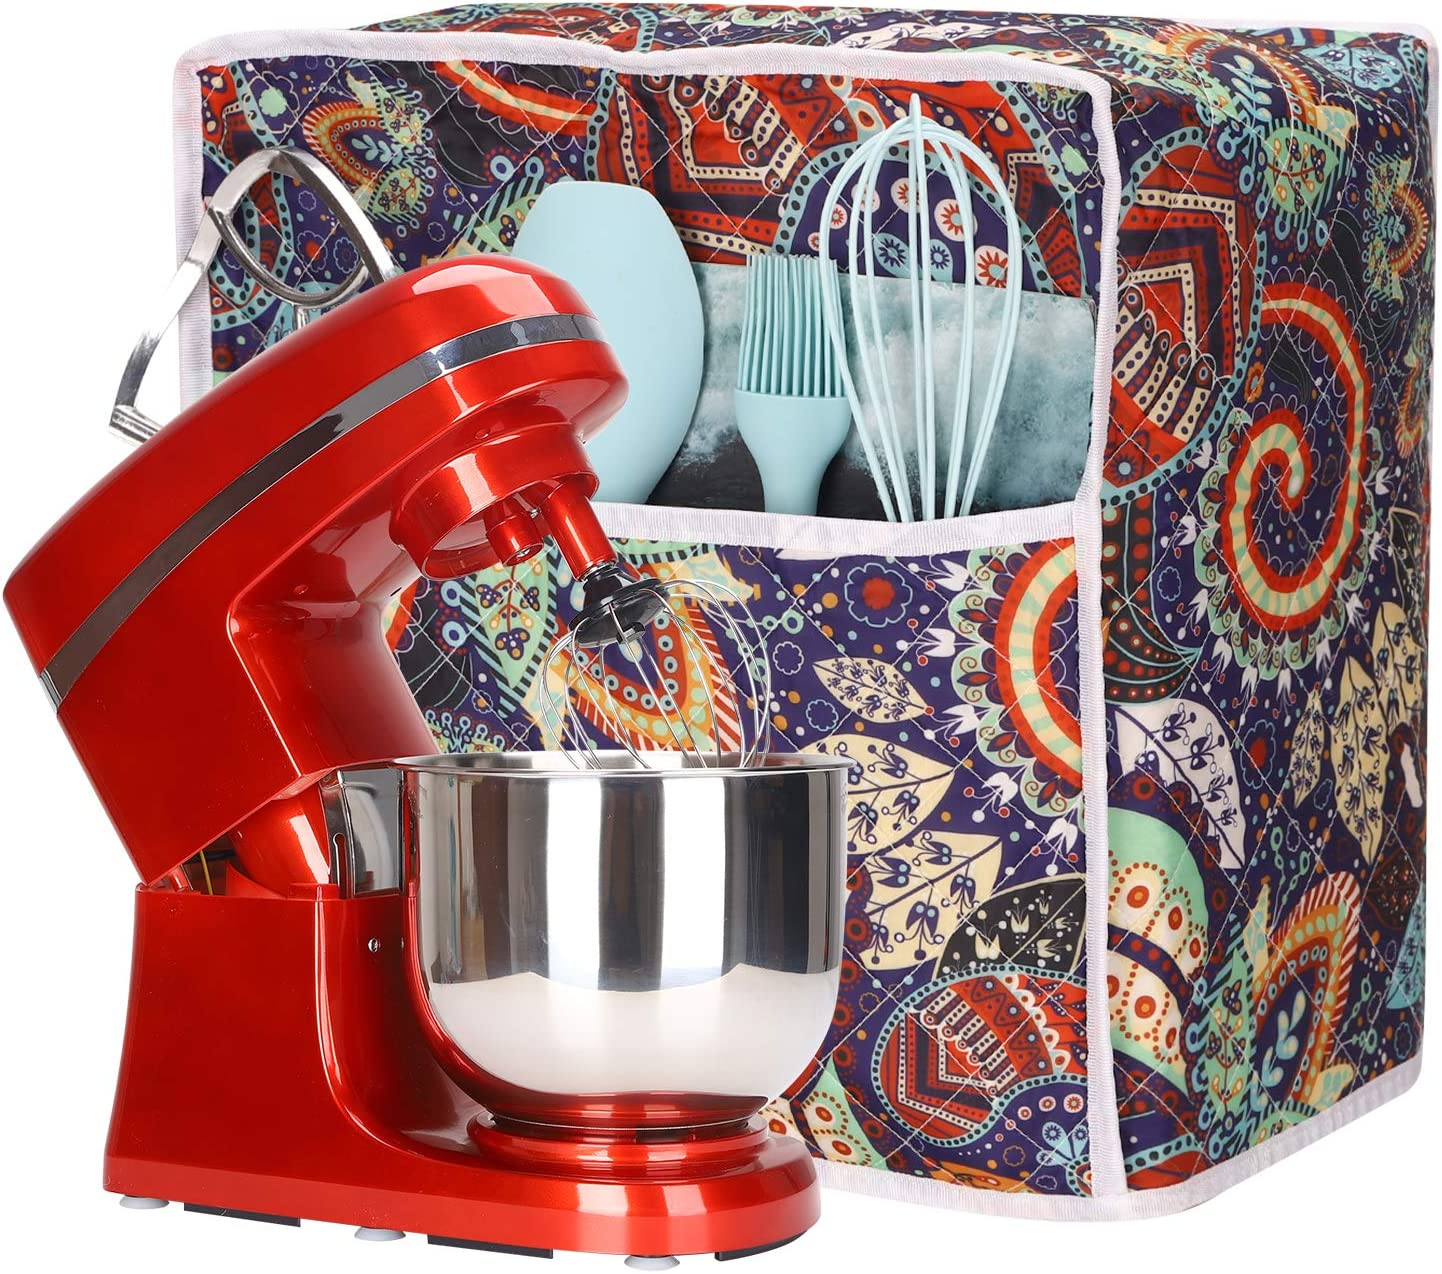 Mixer Dust Cover with Pockets Compatible with 4.5 Quart and All 6 ...